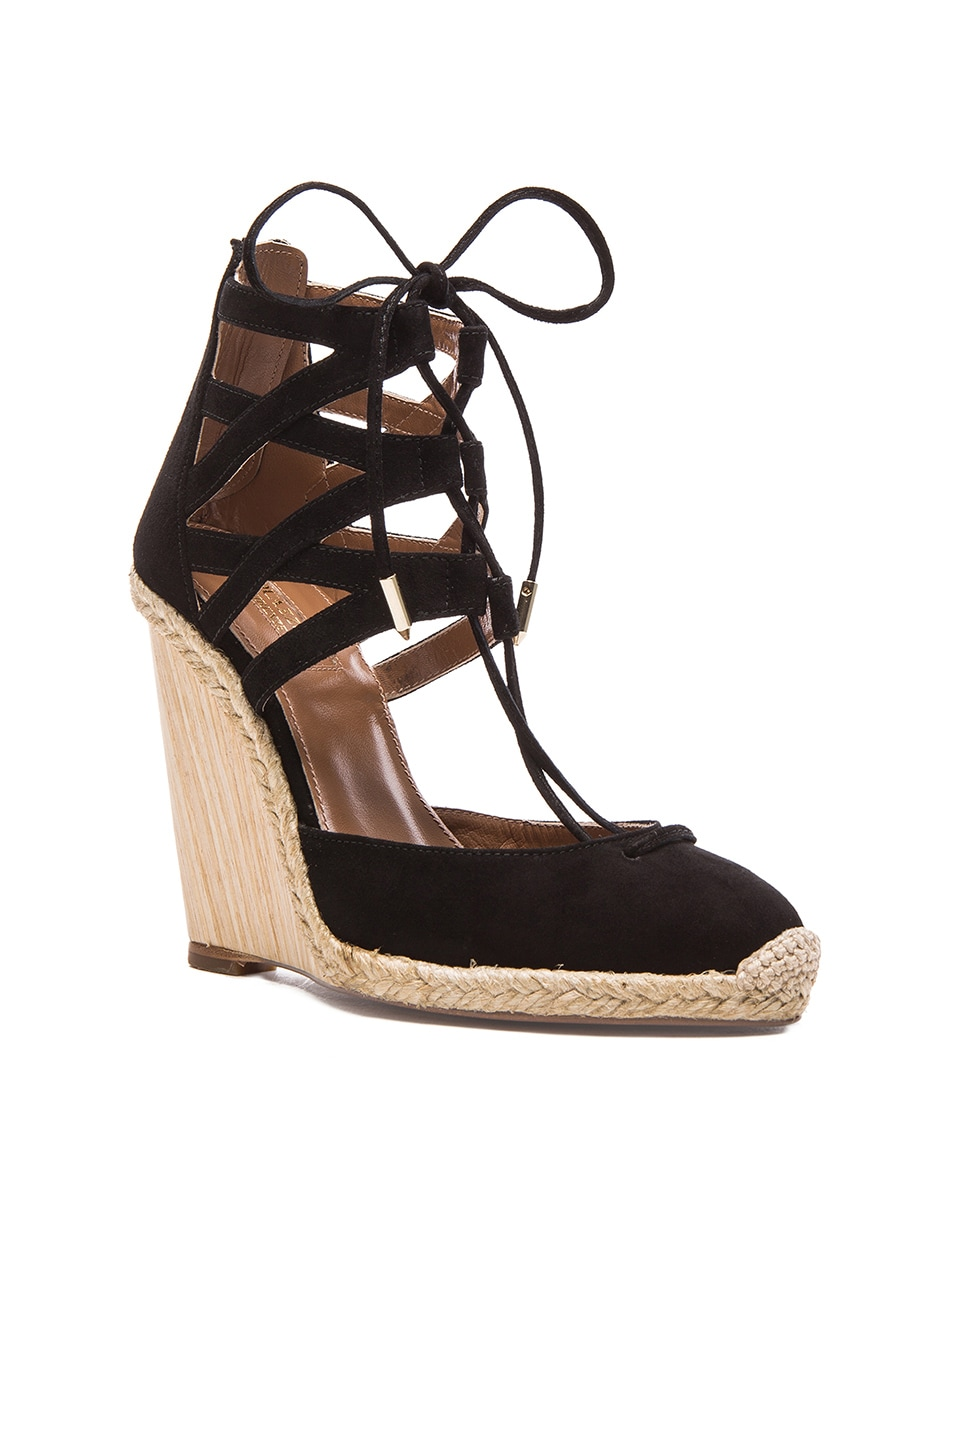 e9e71a712a3 Image 2 of Aquazzura Belgravia Suede Wedge Espadrilles in Black